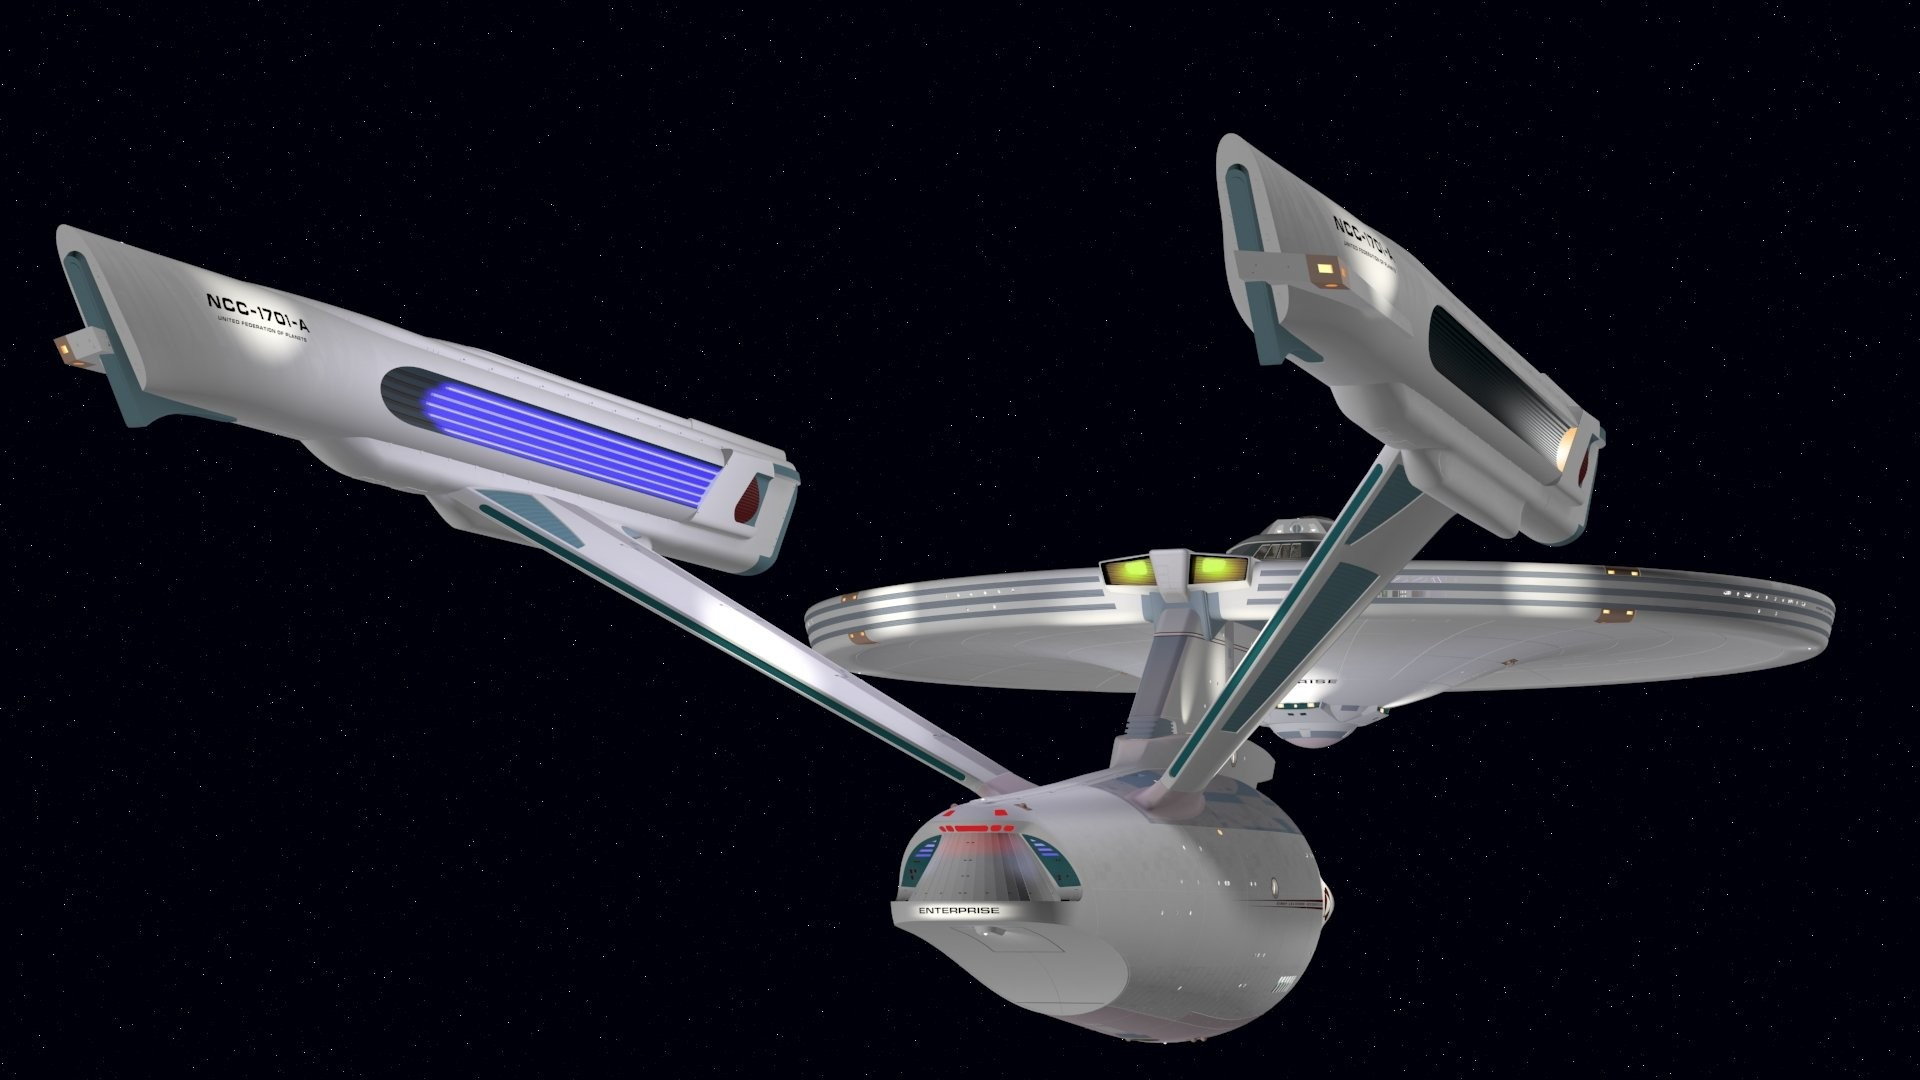 Fabuleux Star Trek Enterprise Wallpaper HD (70+ images) ON66